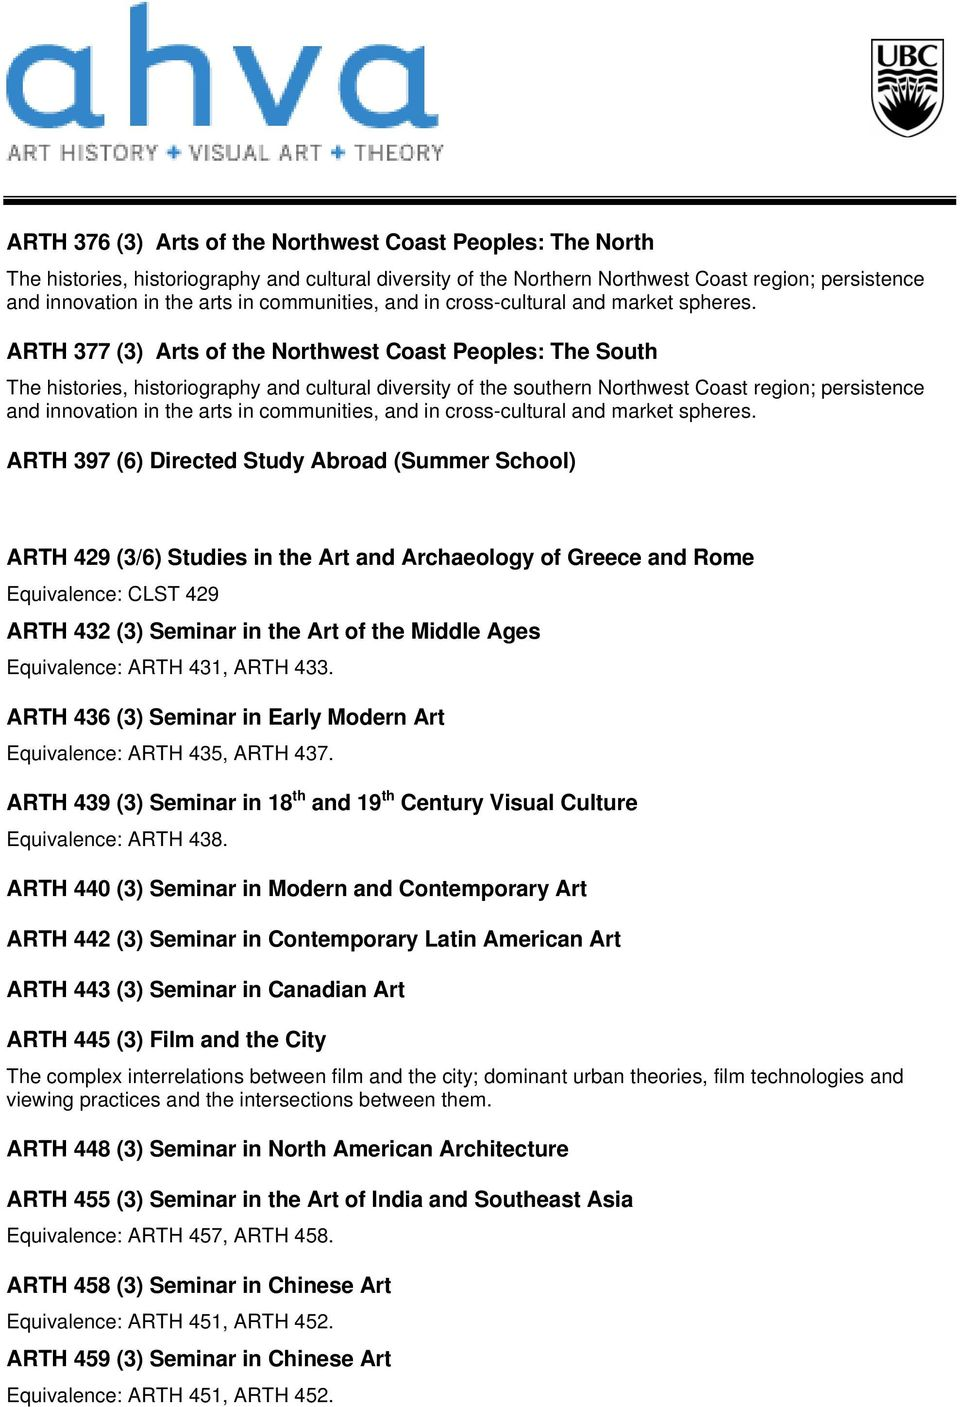 ARTH 377 (3) Arts of the Northwest Coast Peoples: The South The histories, historiography and cultural diversity of the southern Northwest Coast region; persistence and innovation in the arts in